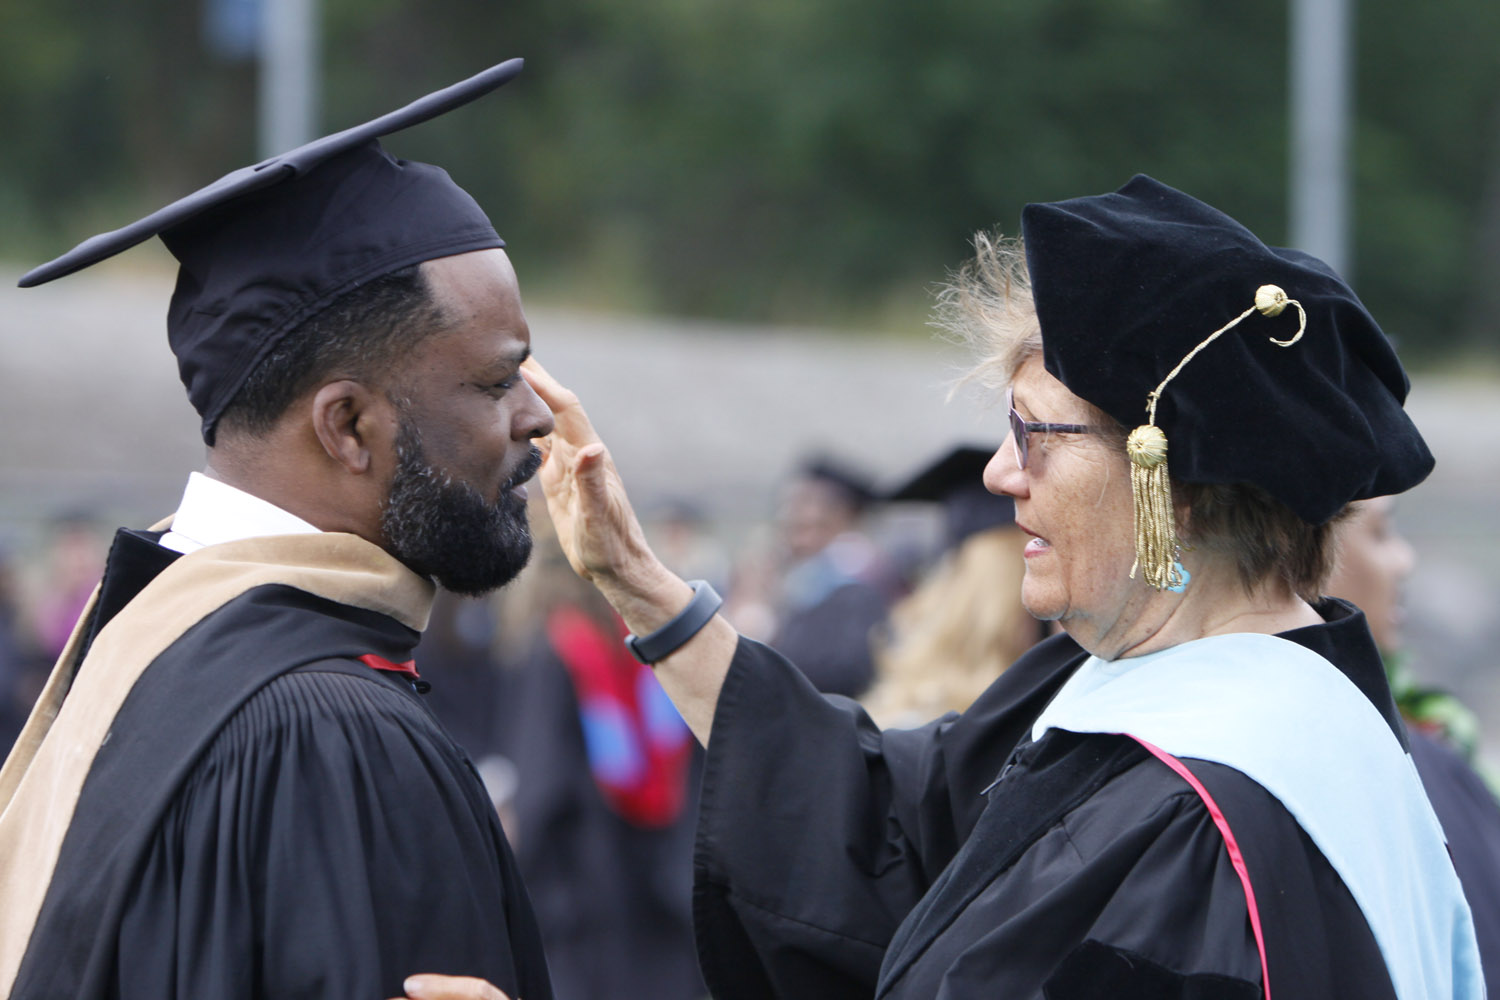 Student receiving degree at Commencement